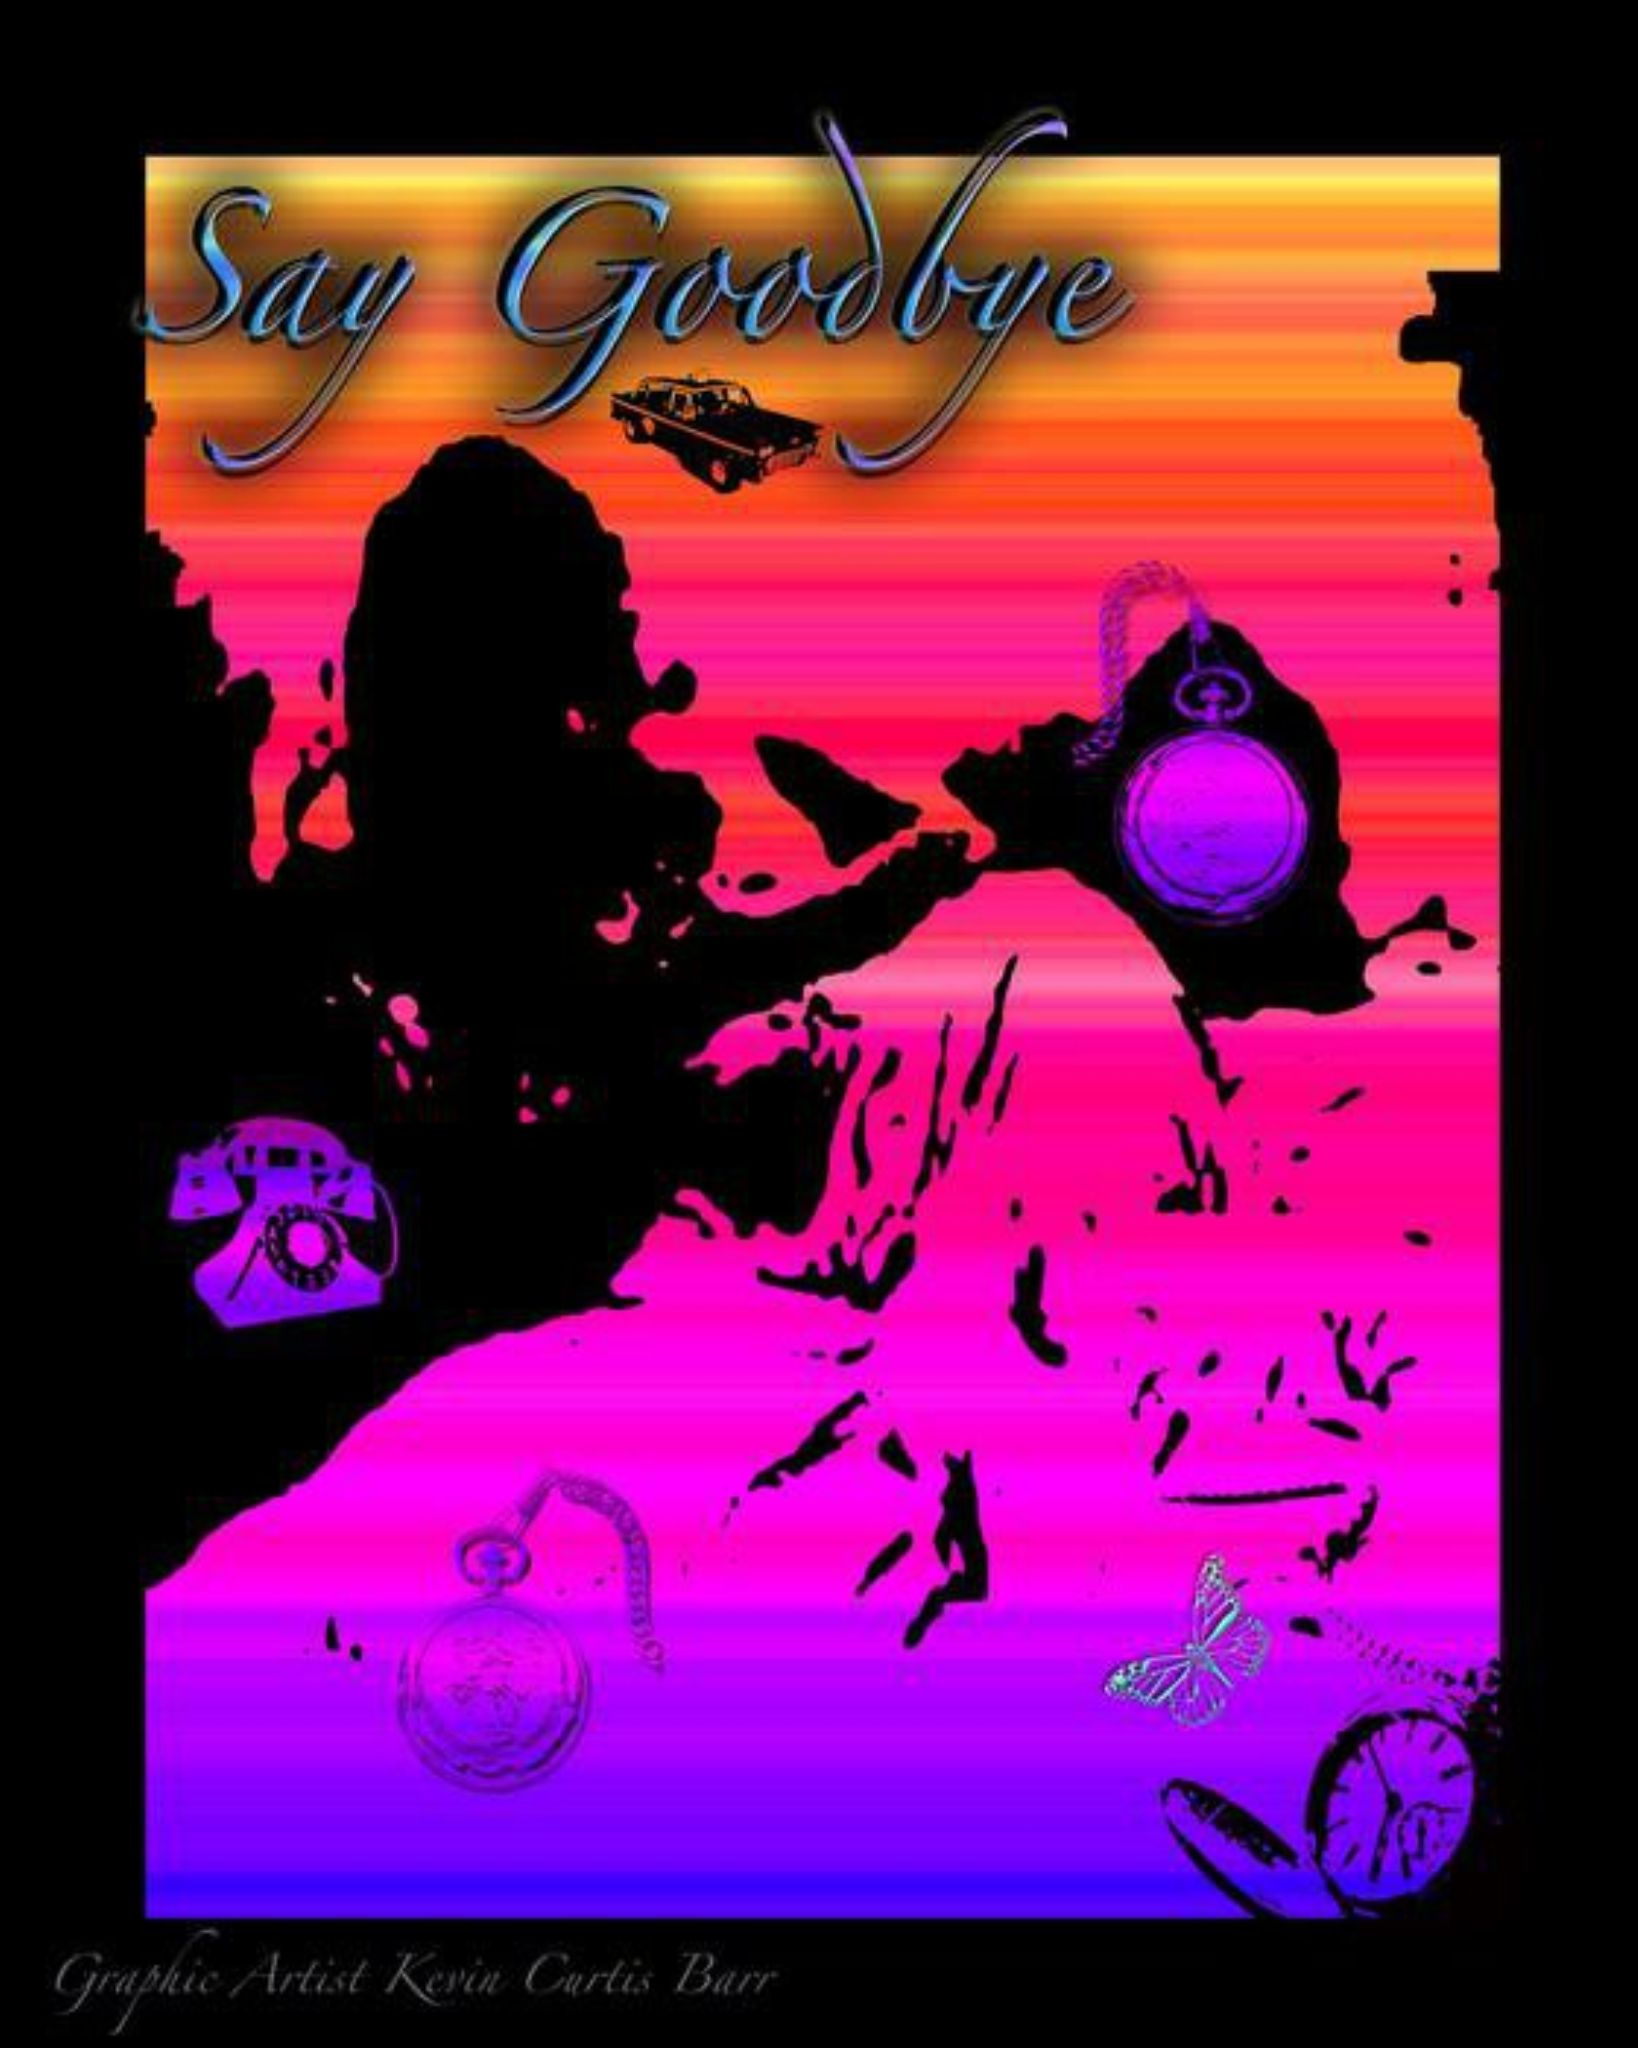 SAY GOODBYE by Kevin Curtis Barr